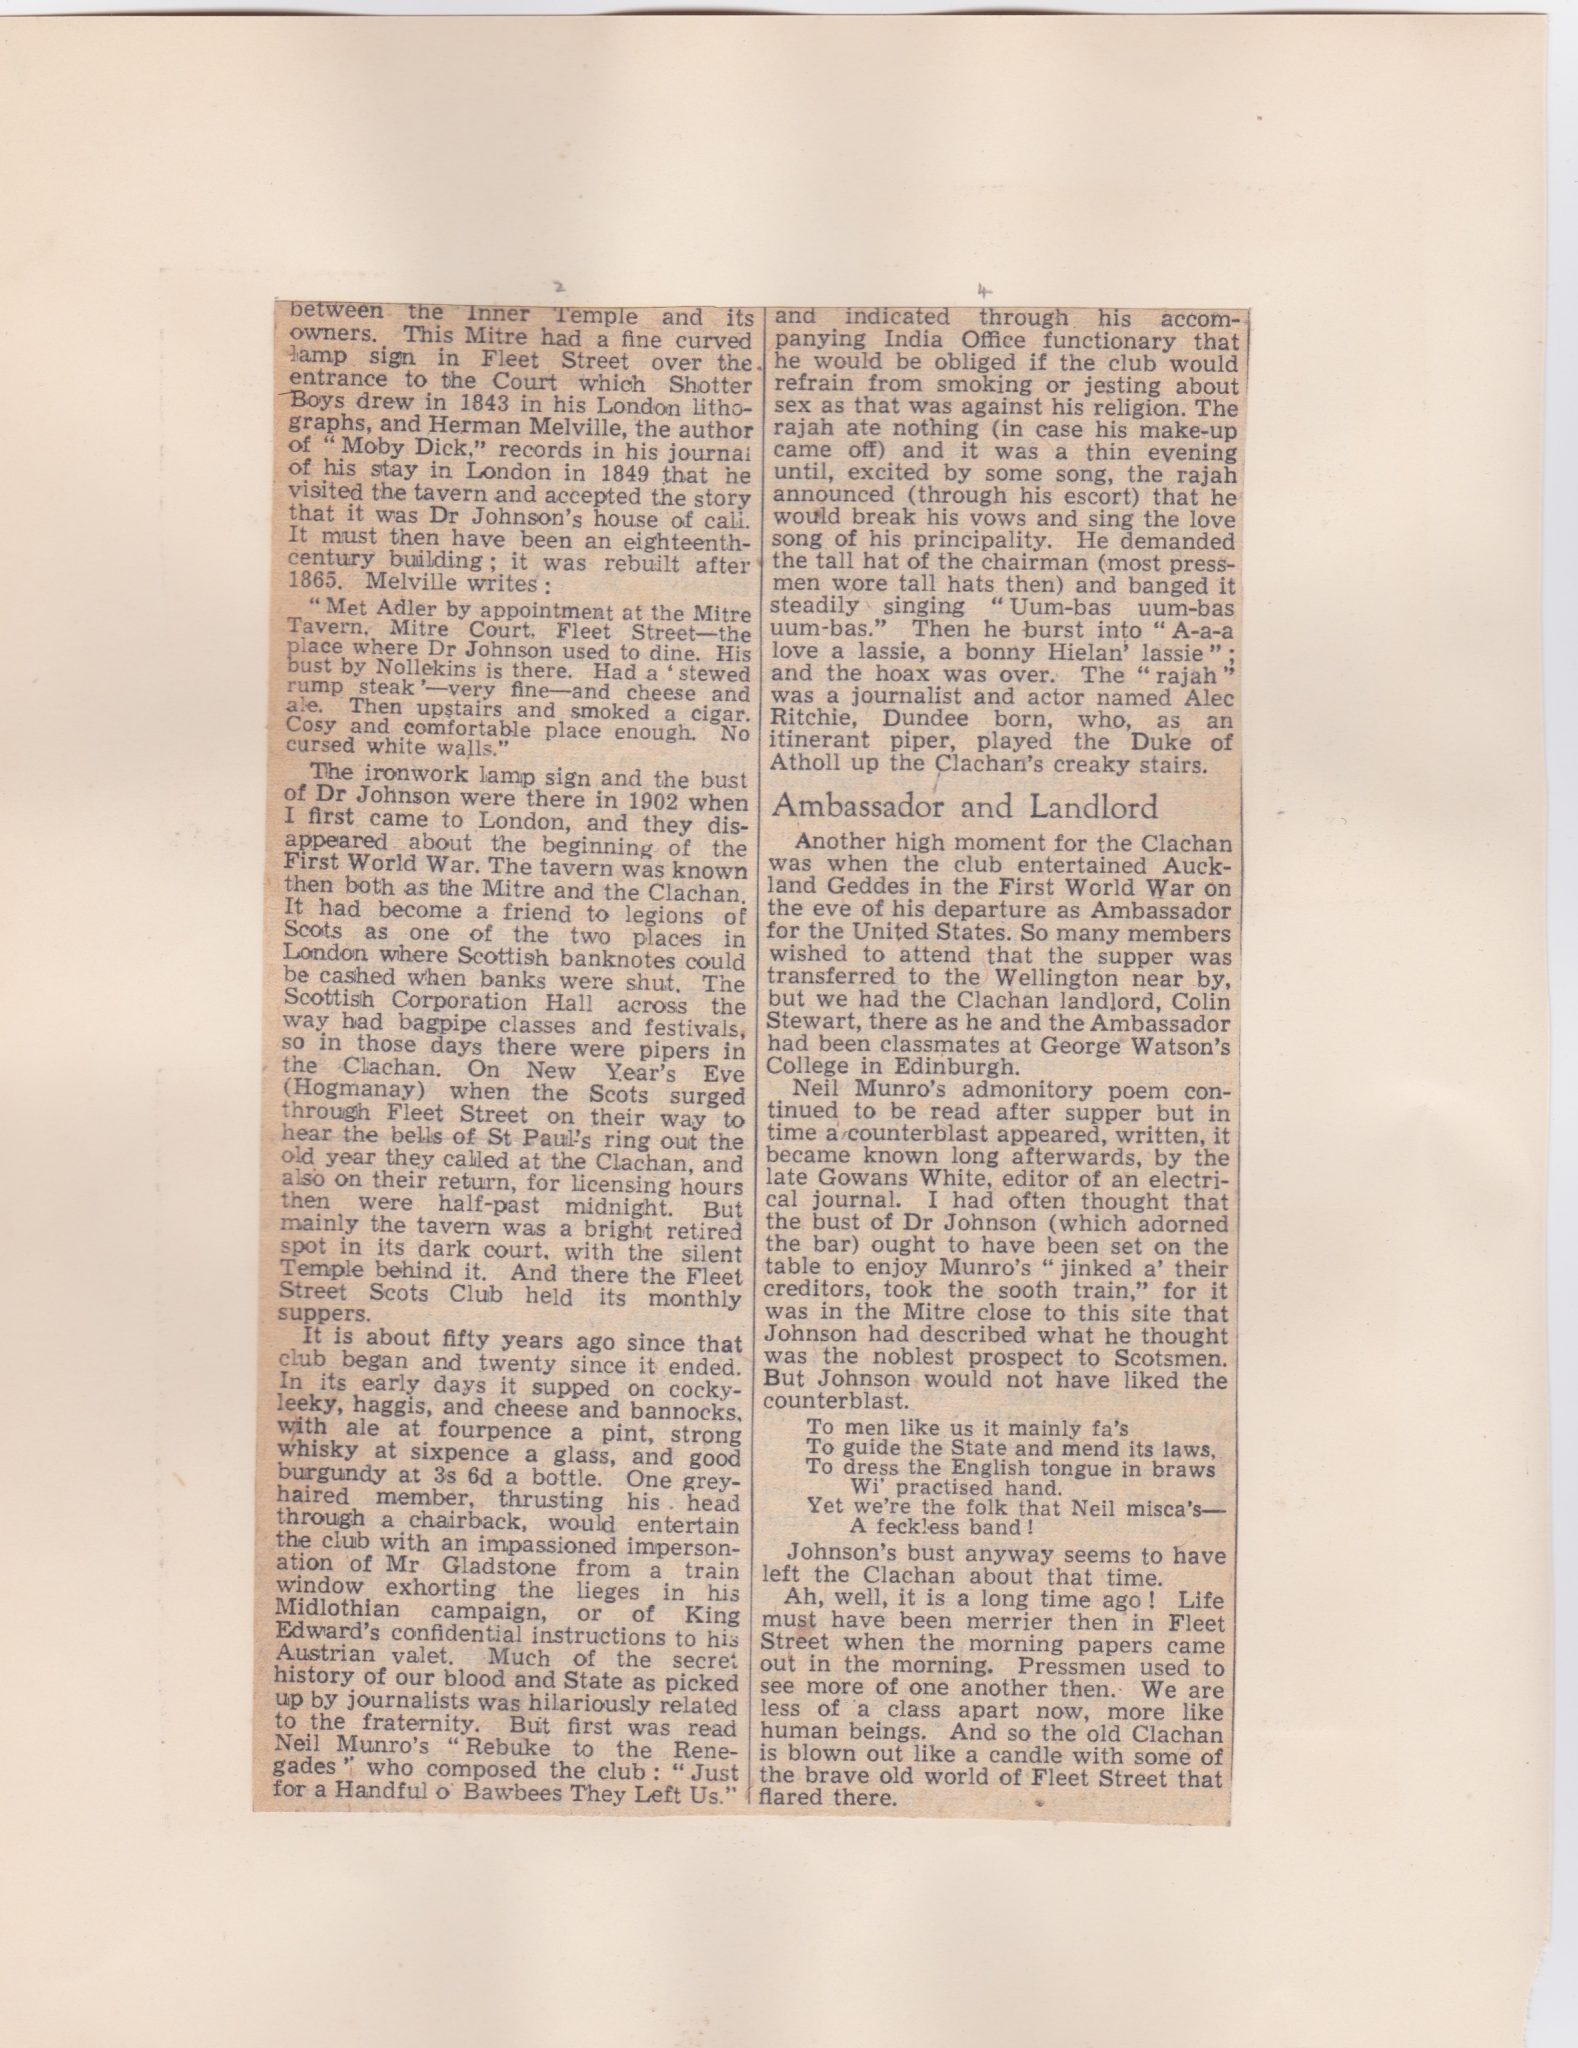 Continuation of article on the Clachan pub